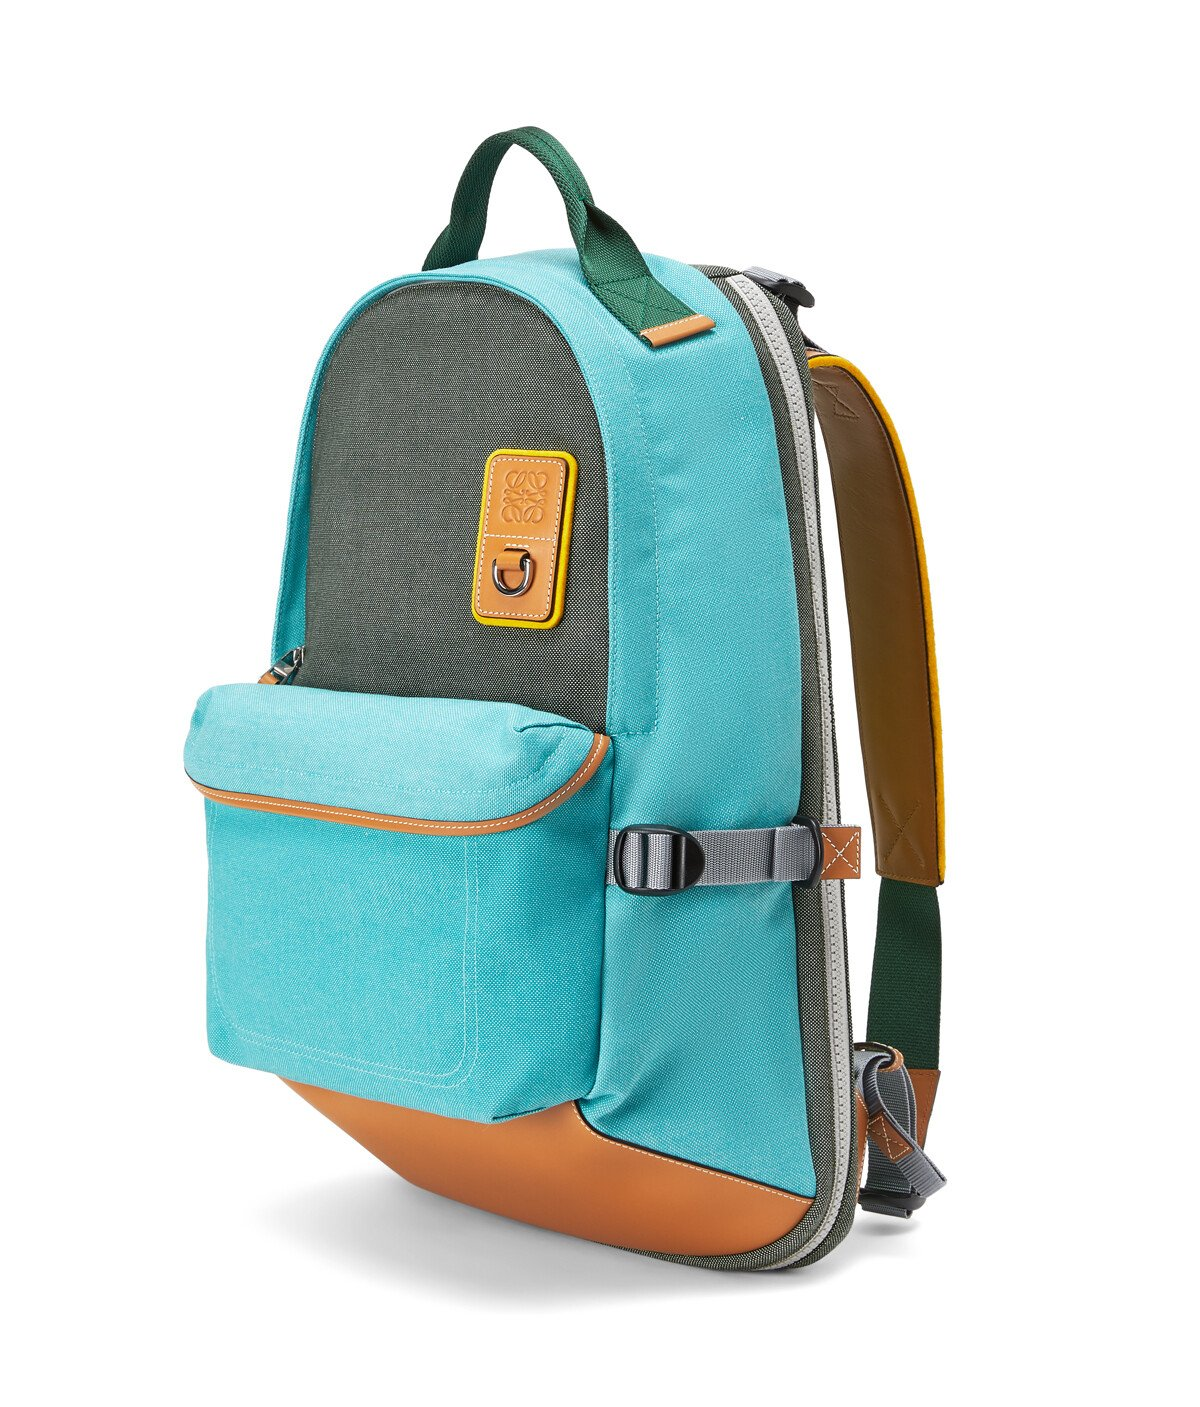 LOEWE Eye/Loewe/Nature Backpack Turquoise front